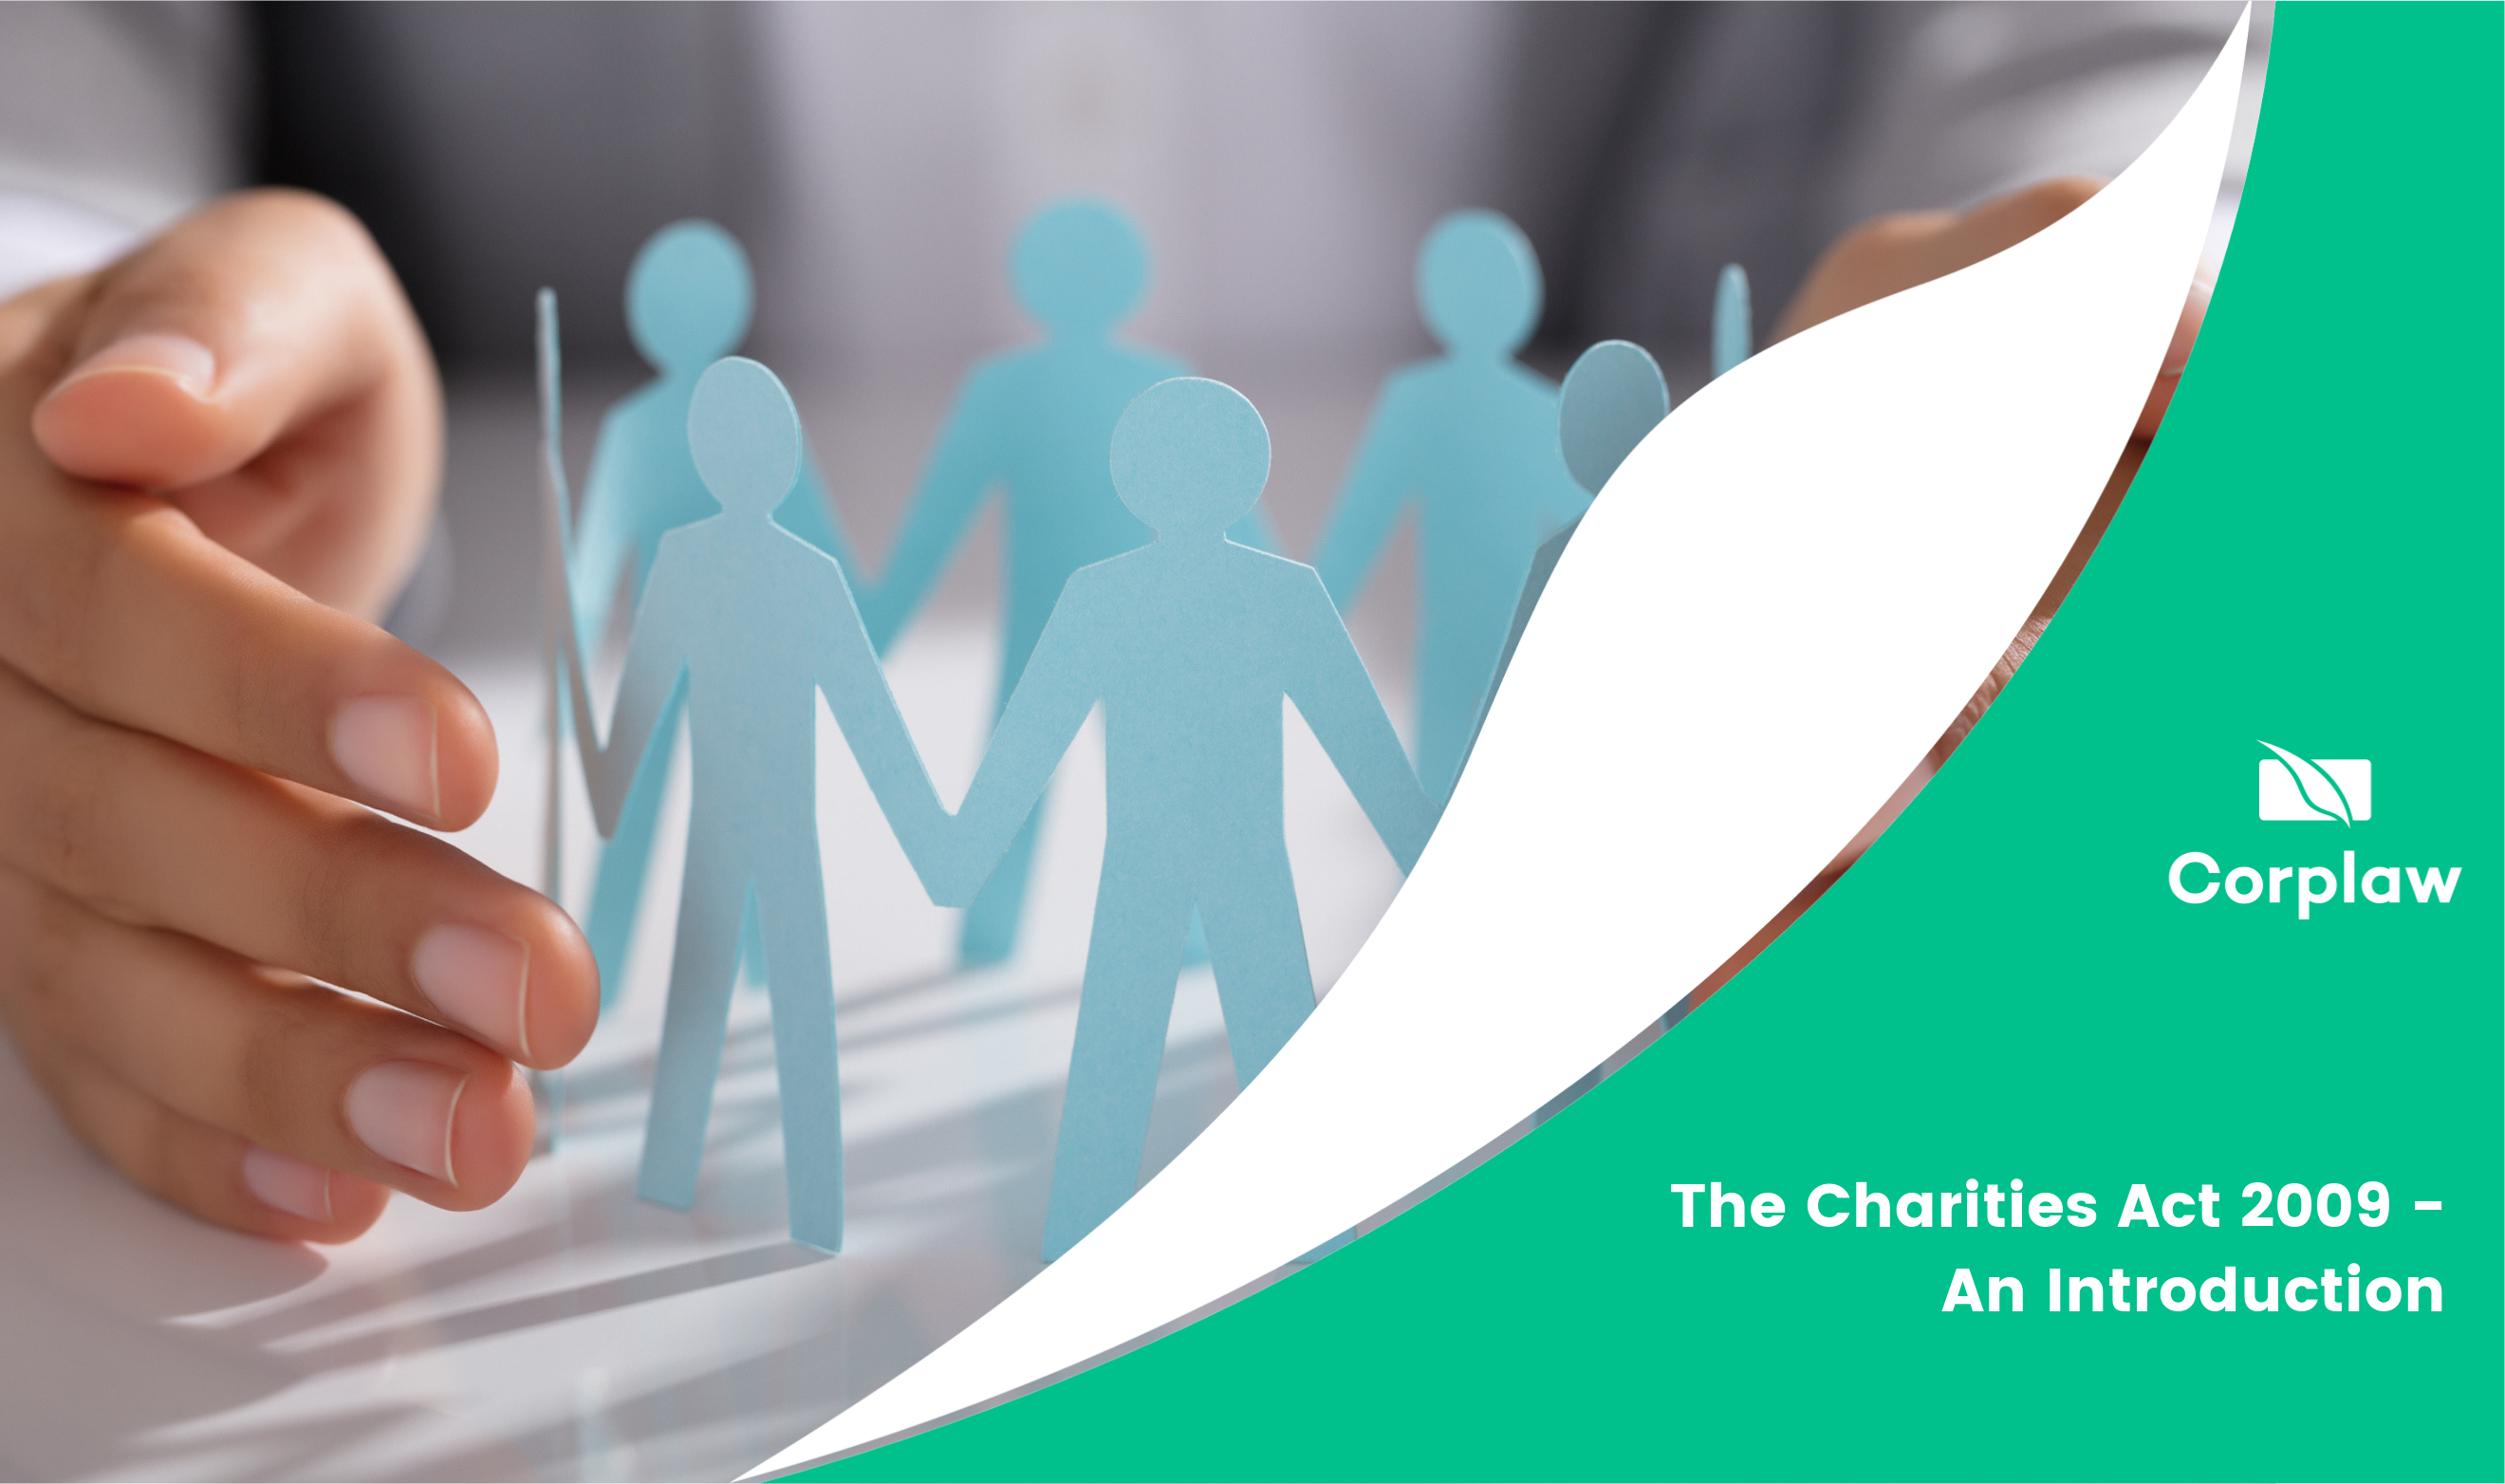 The Charities Act 2009 - An Introduction